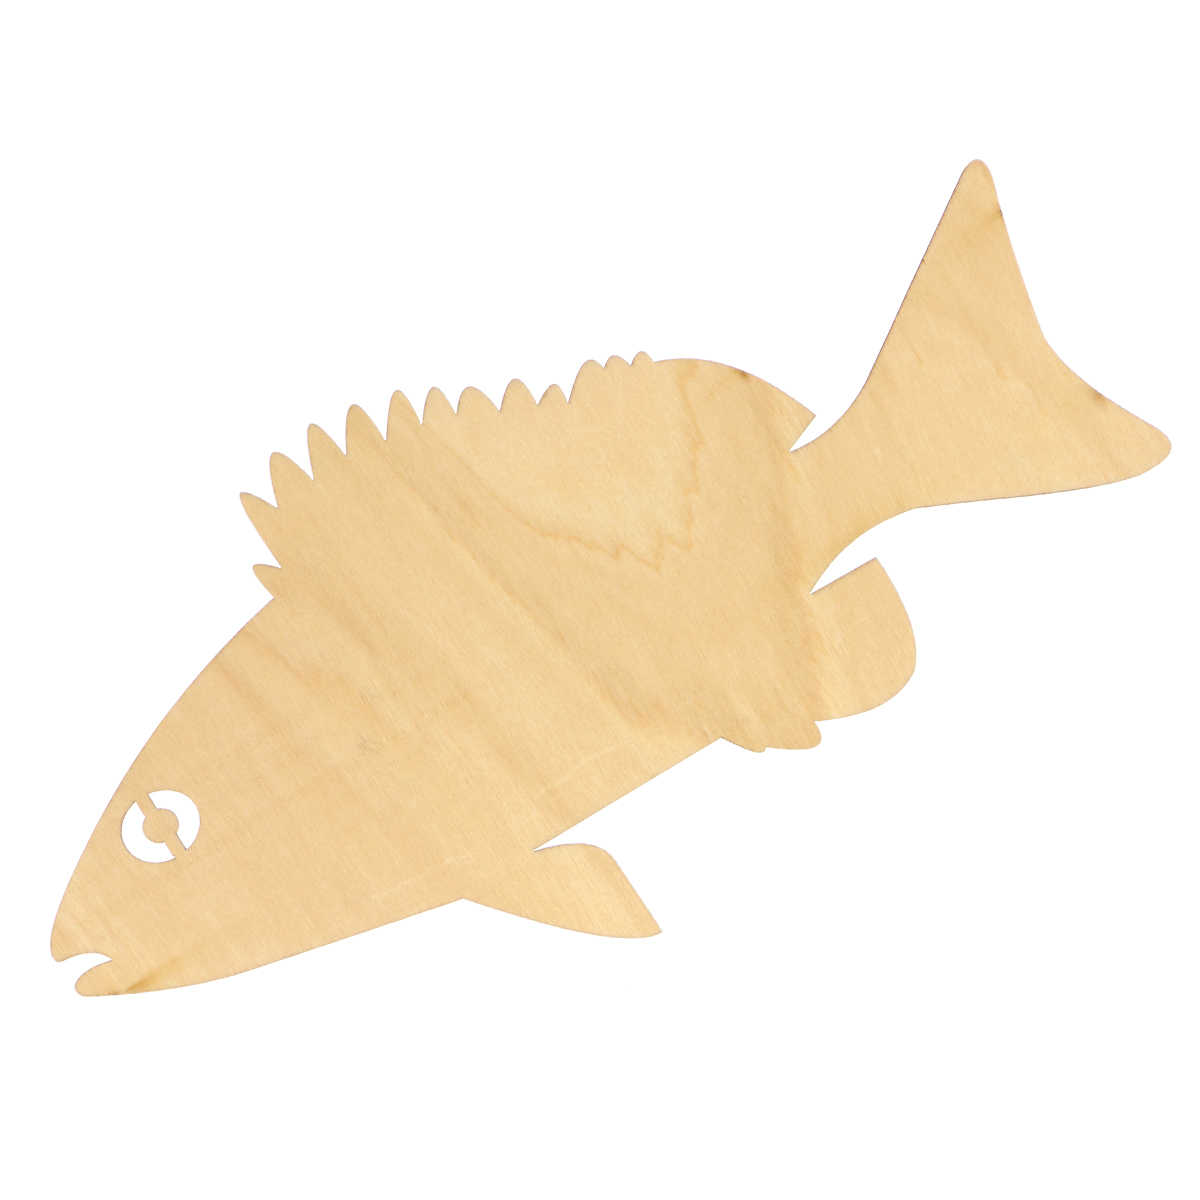 Unfinished Wood Cutout Chips Wooden Slices For Board Game Pieces Arts  Crafts Projects Ornaments